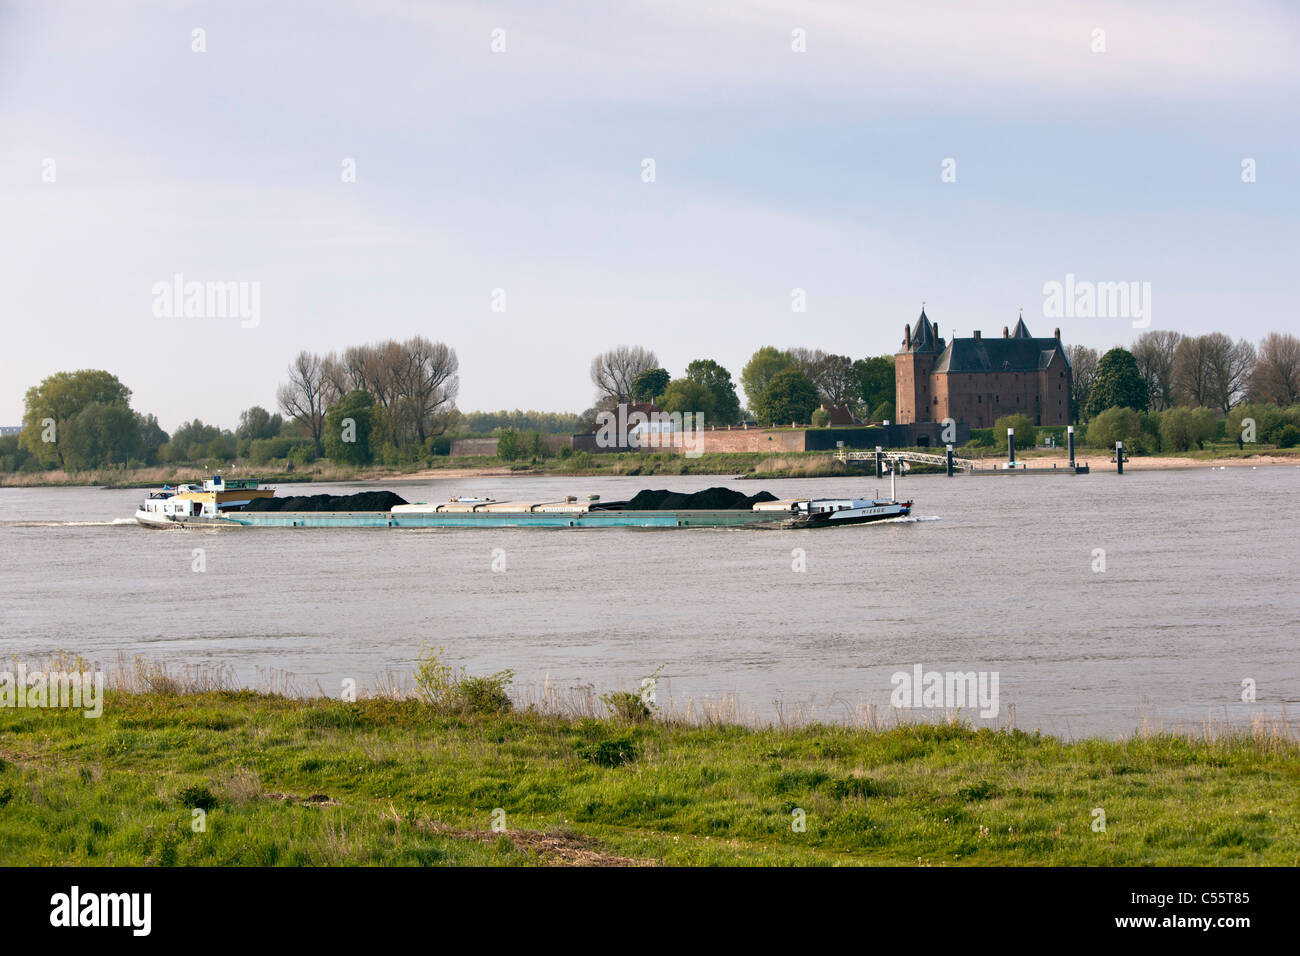 The Netherlands, Woudrichem, Loevestein Castle and cargo ship in river called Maas. Stock Photo